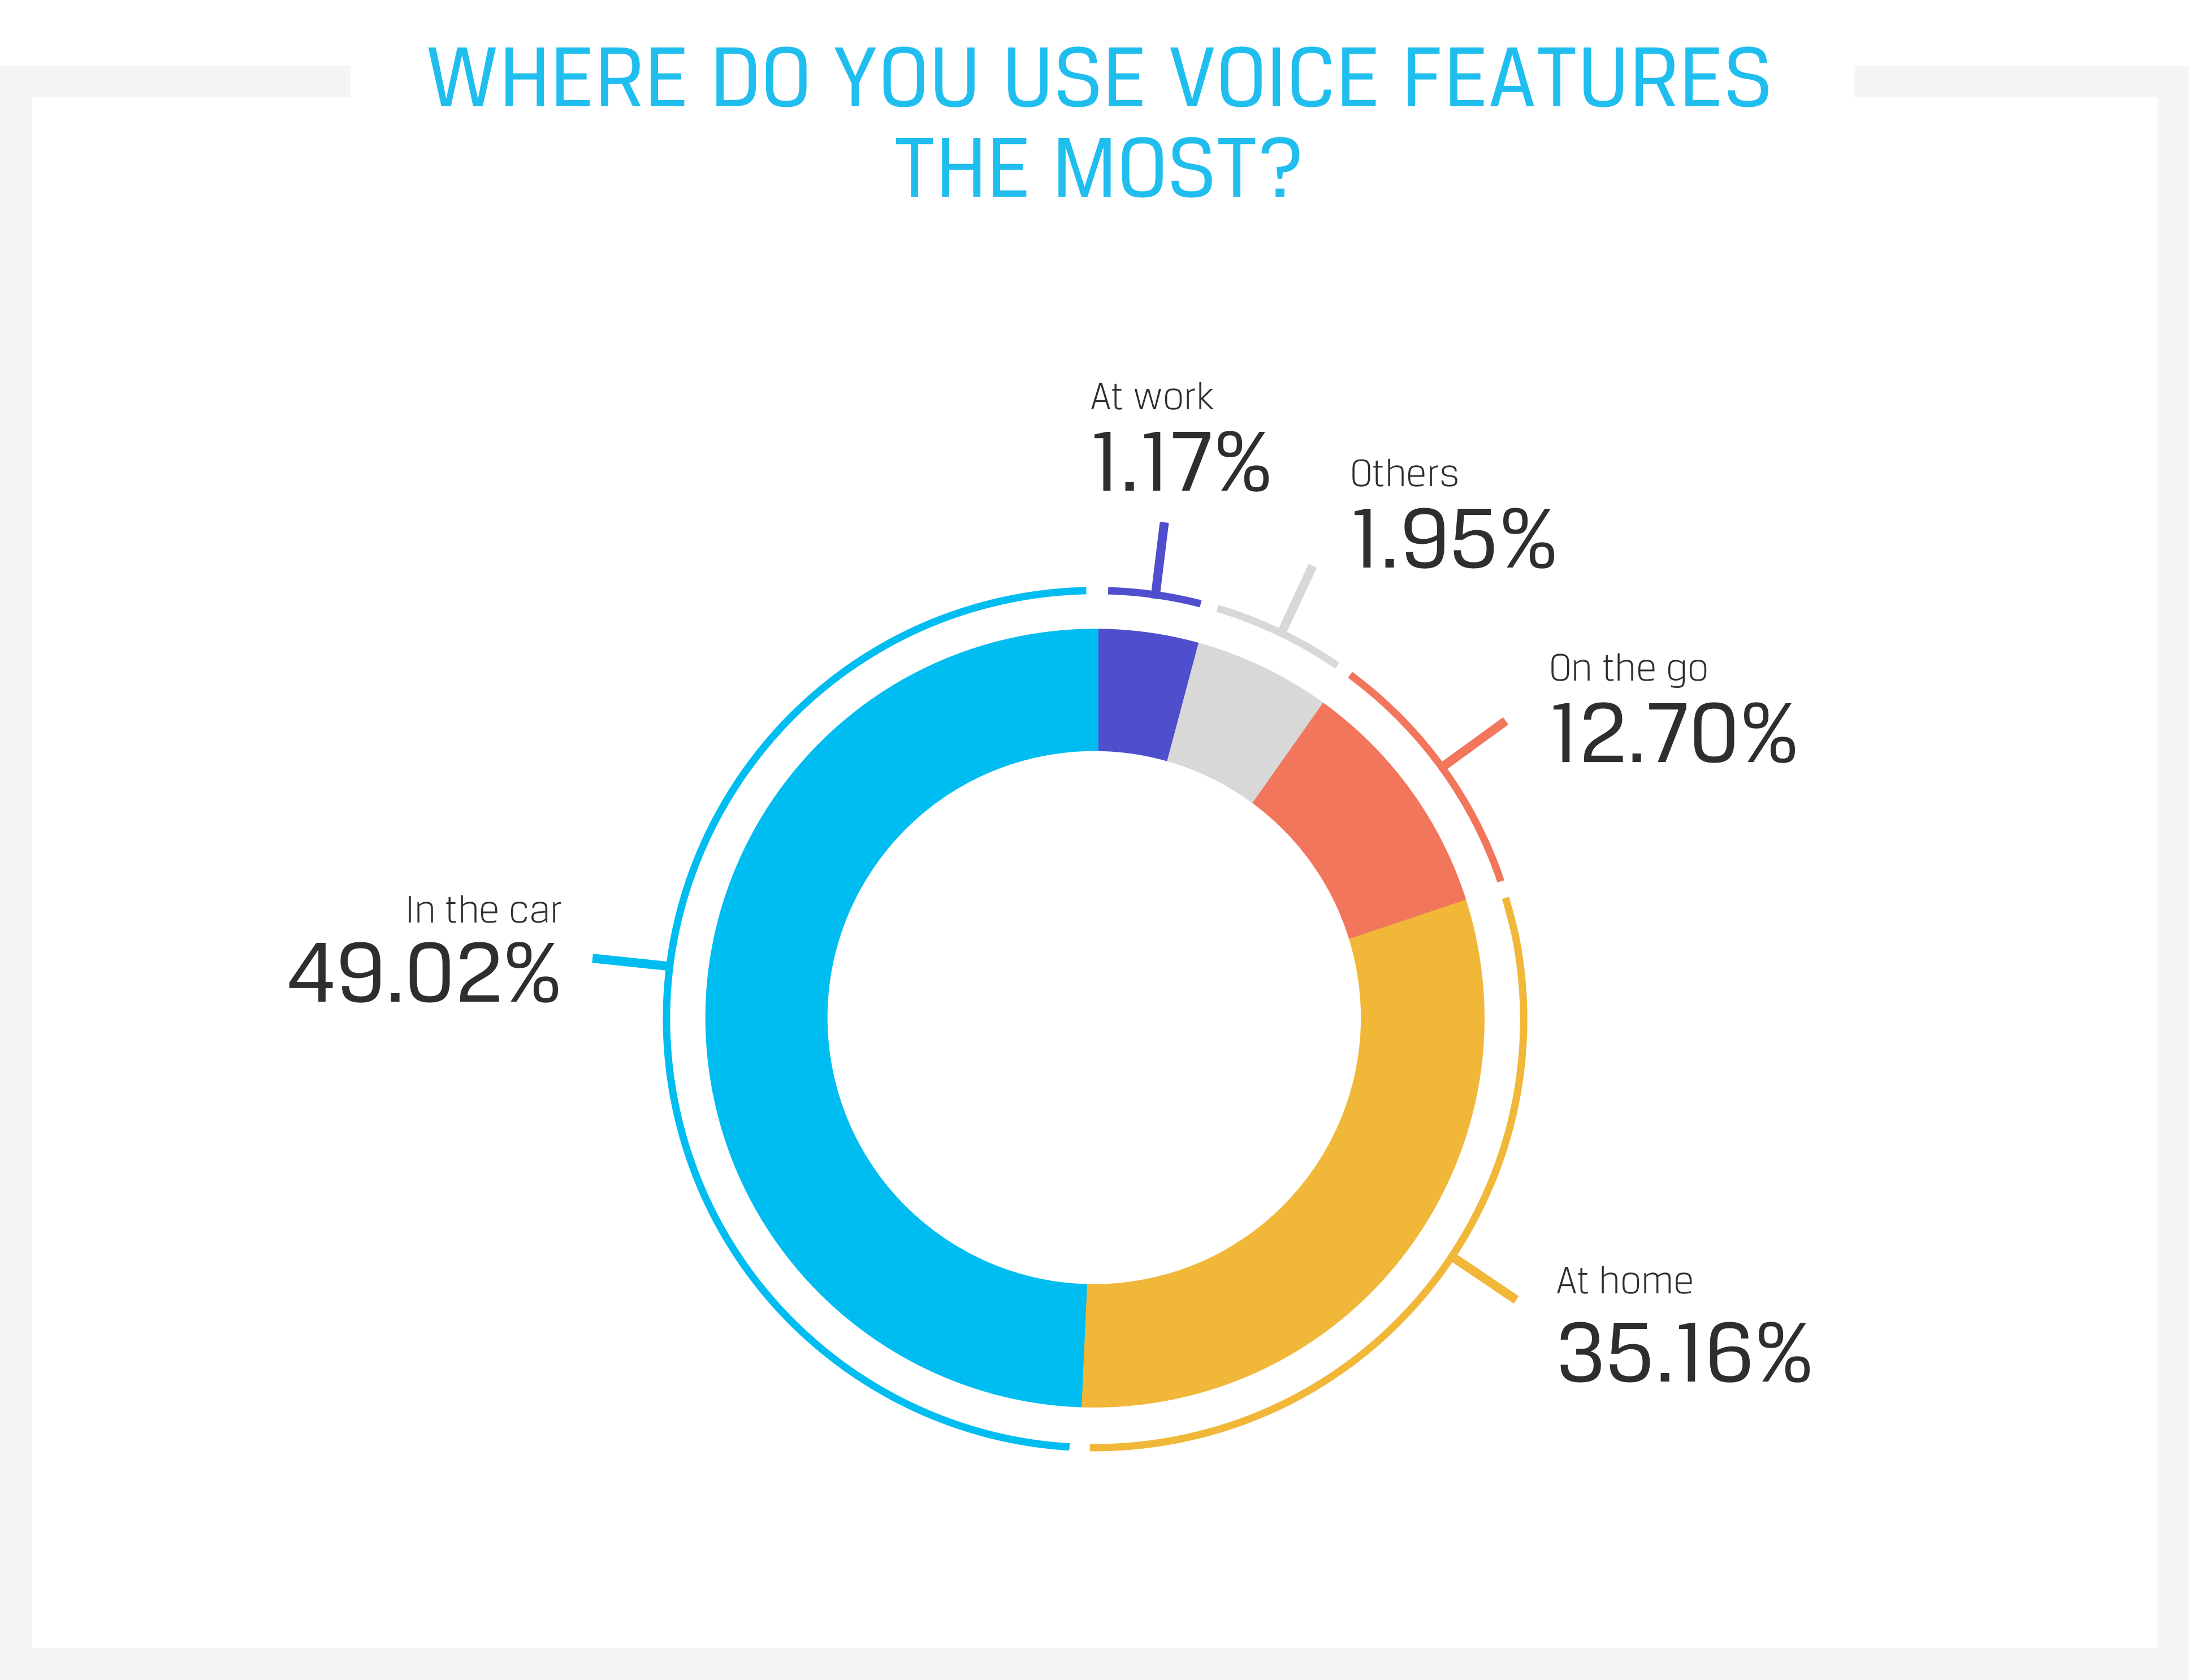 Where do you use voice features most?